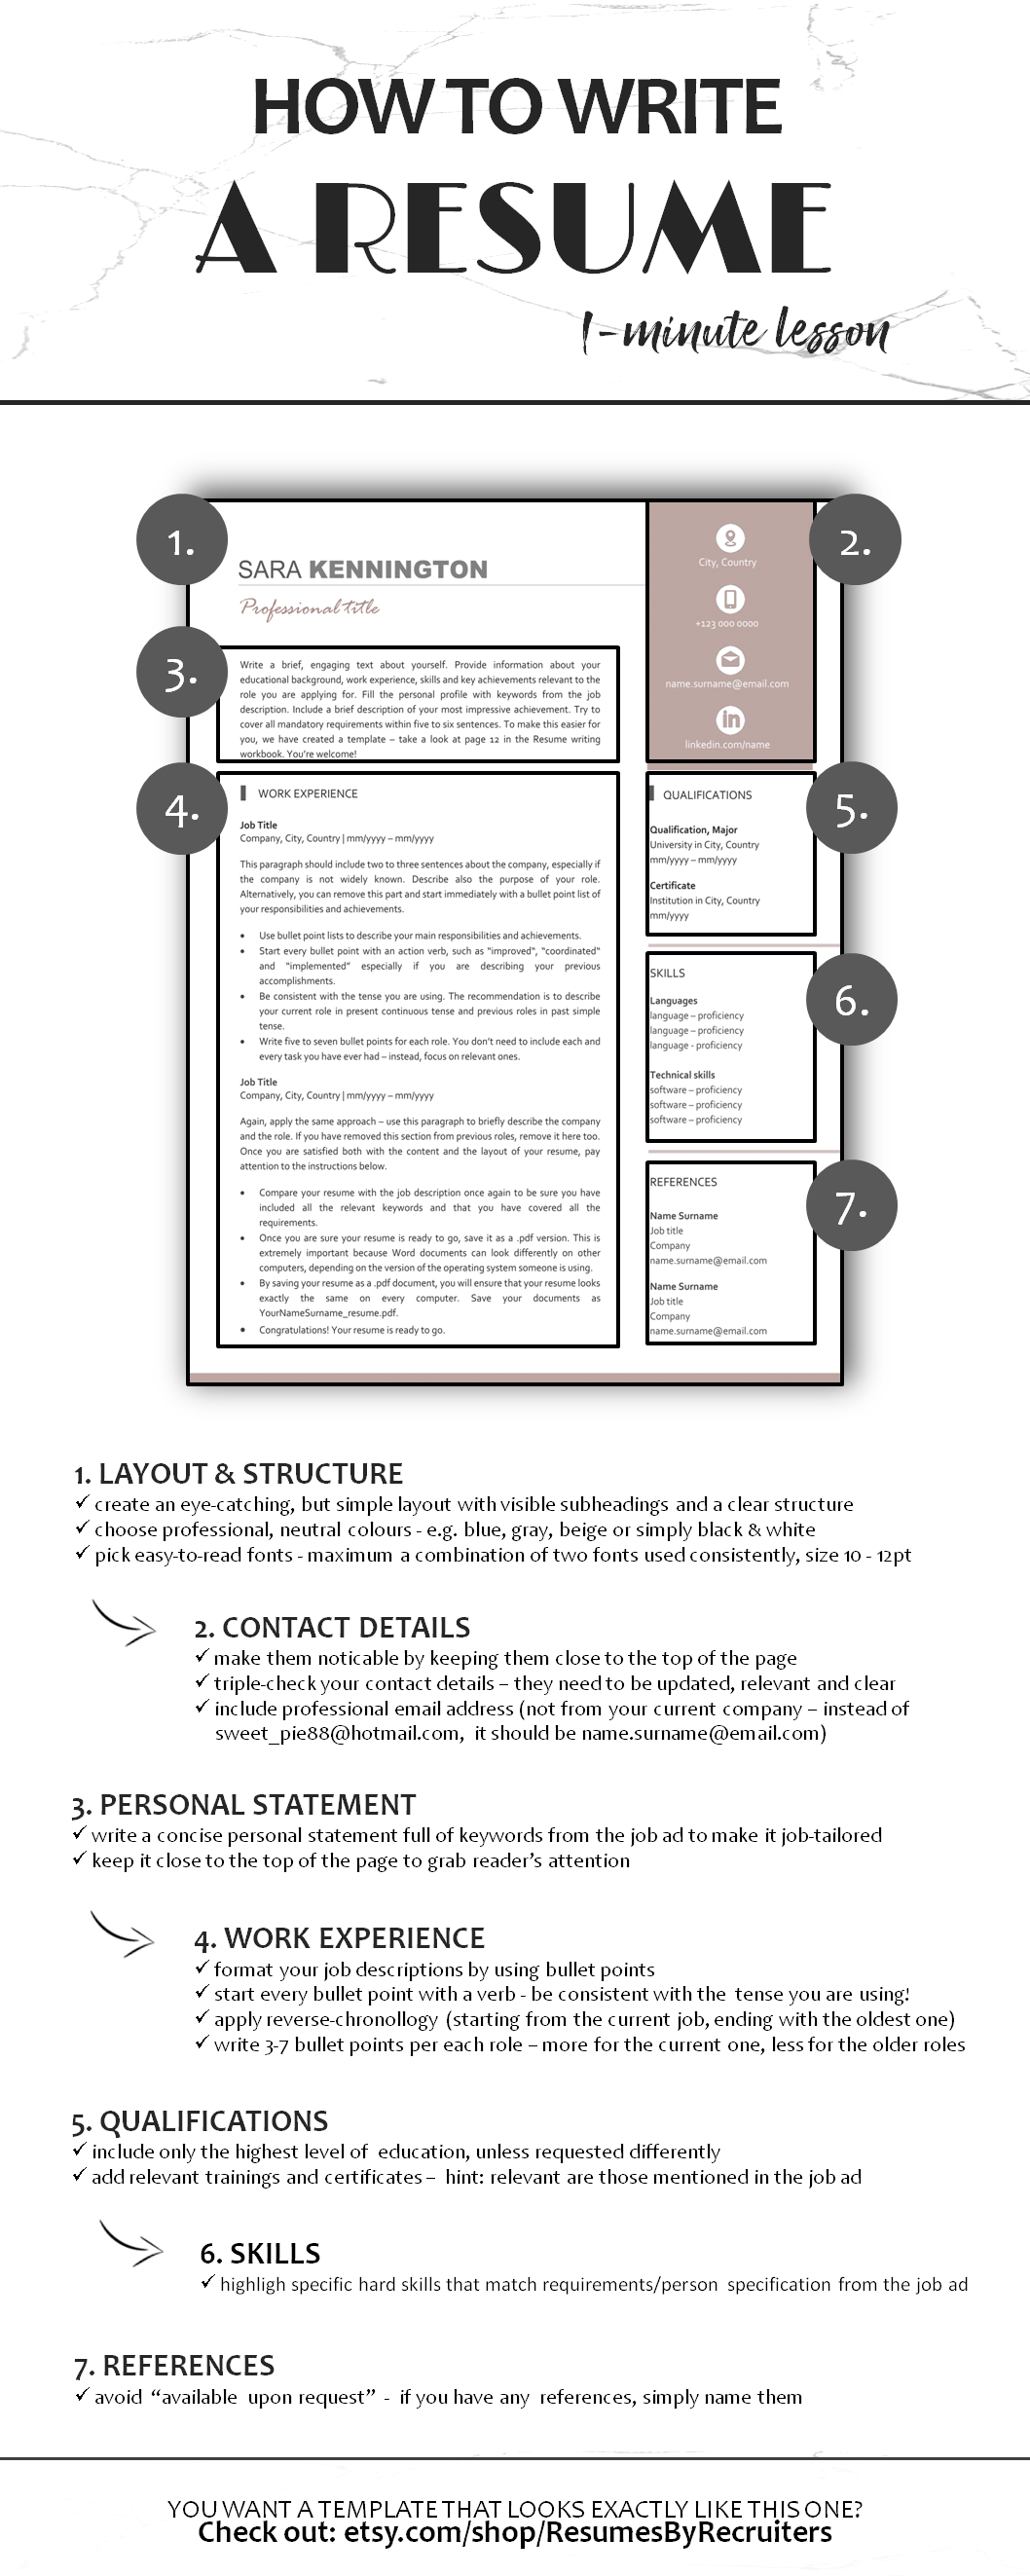 Cv Writing Tips Learn How To Create A Perfect Resume In Less Than One Minute Resume Cv Howtowriteresume Resumewriti With Images Resume Advice Resume Writing Templates